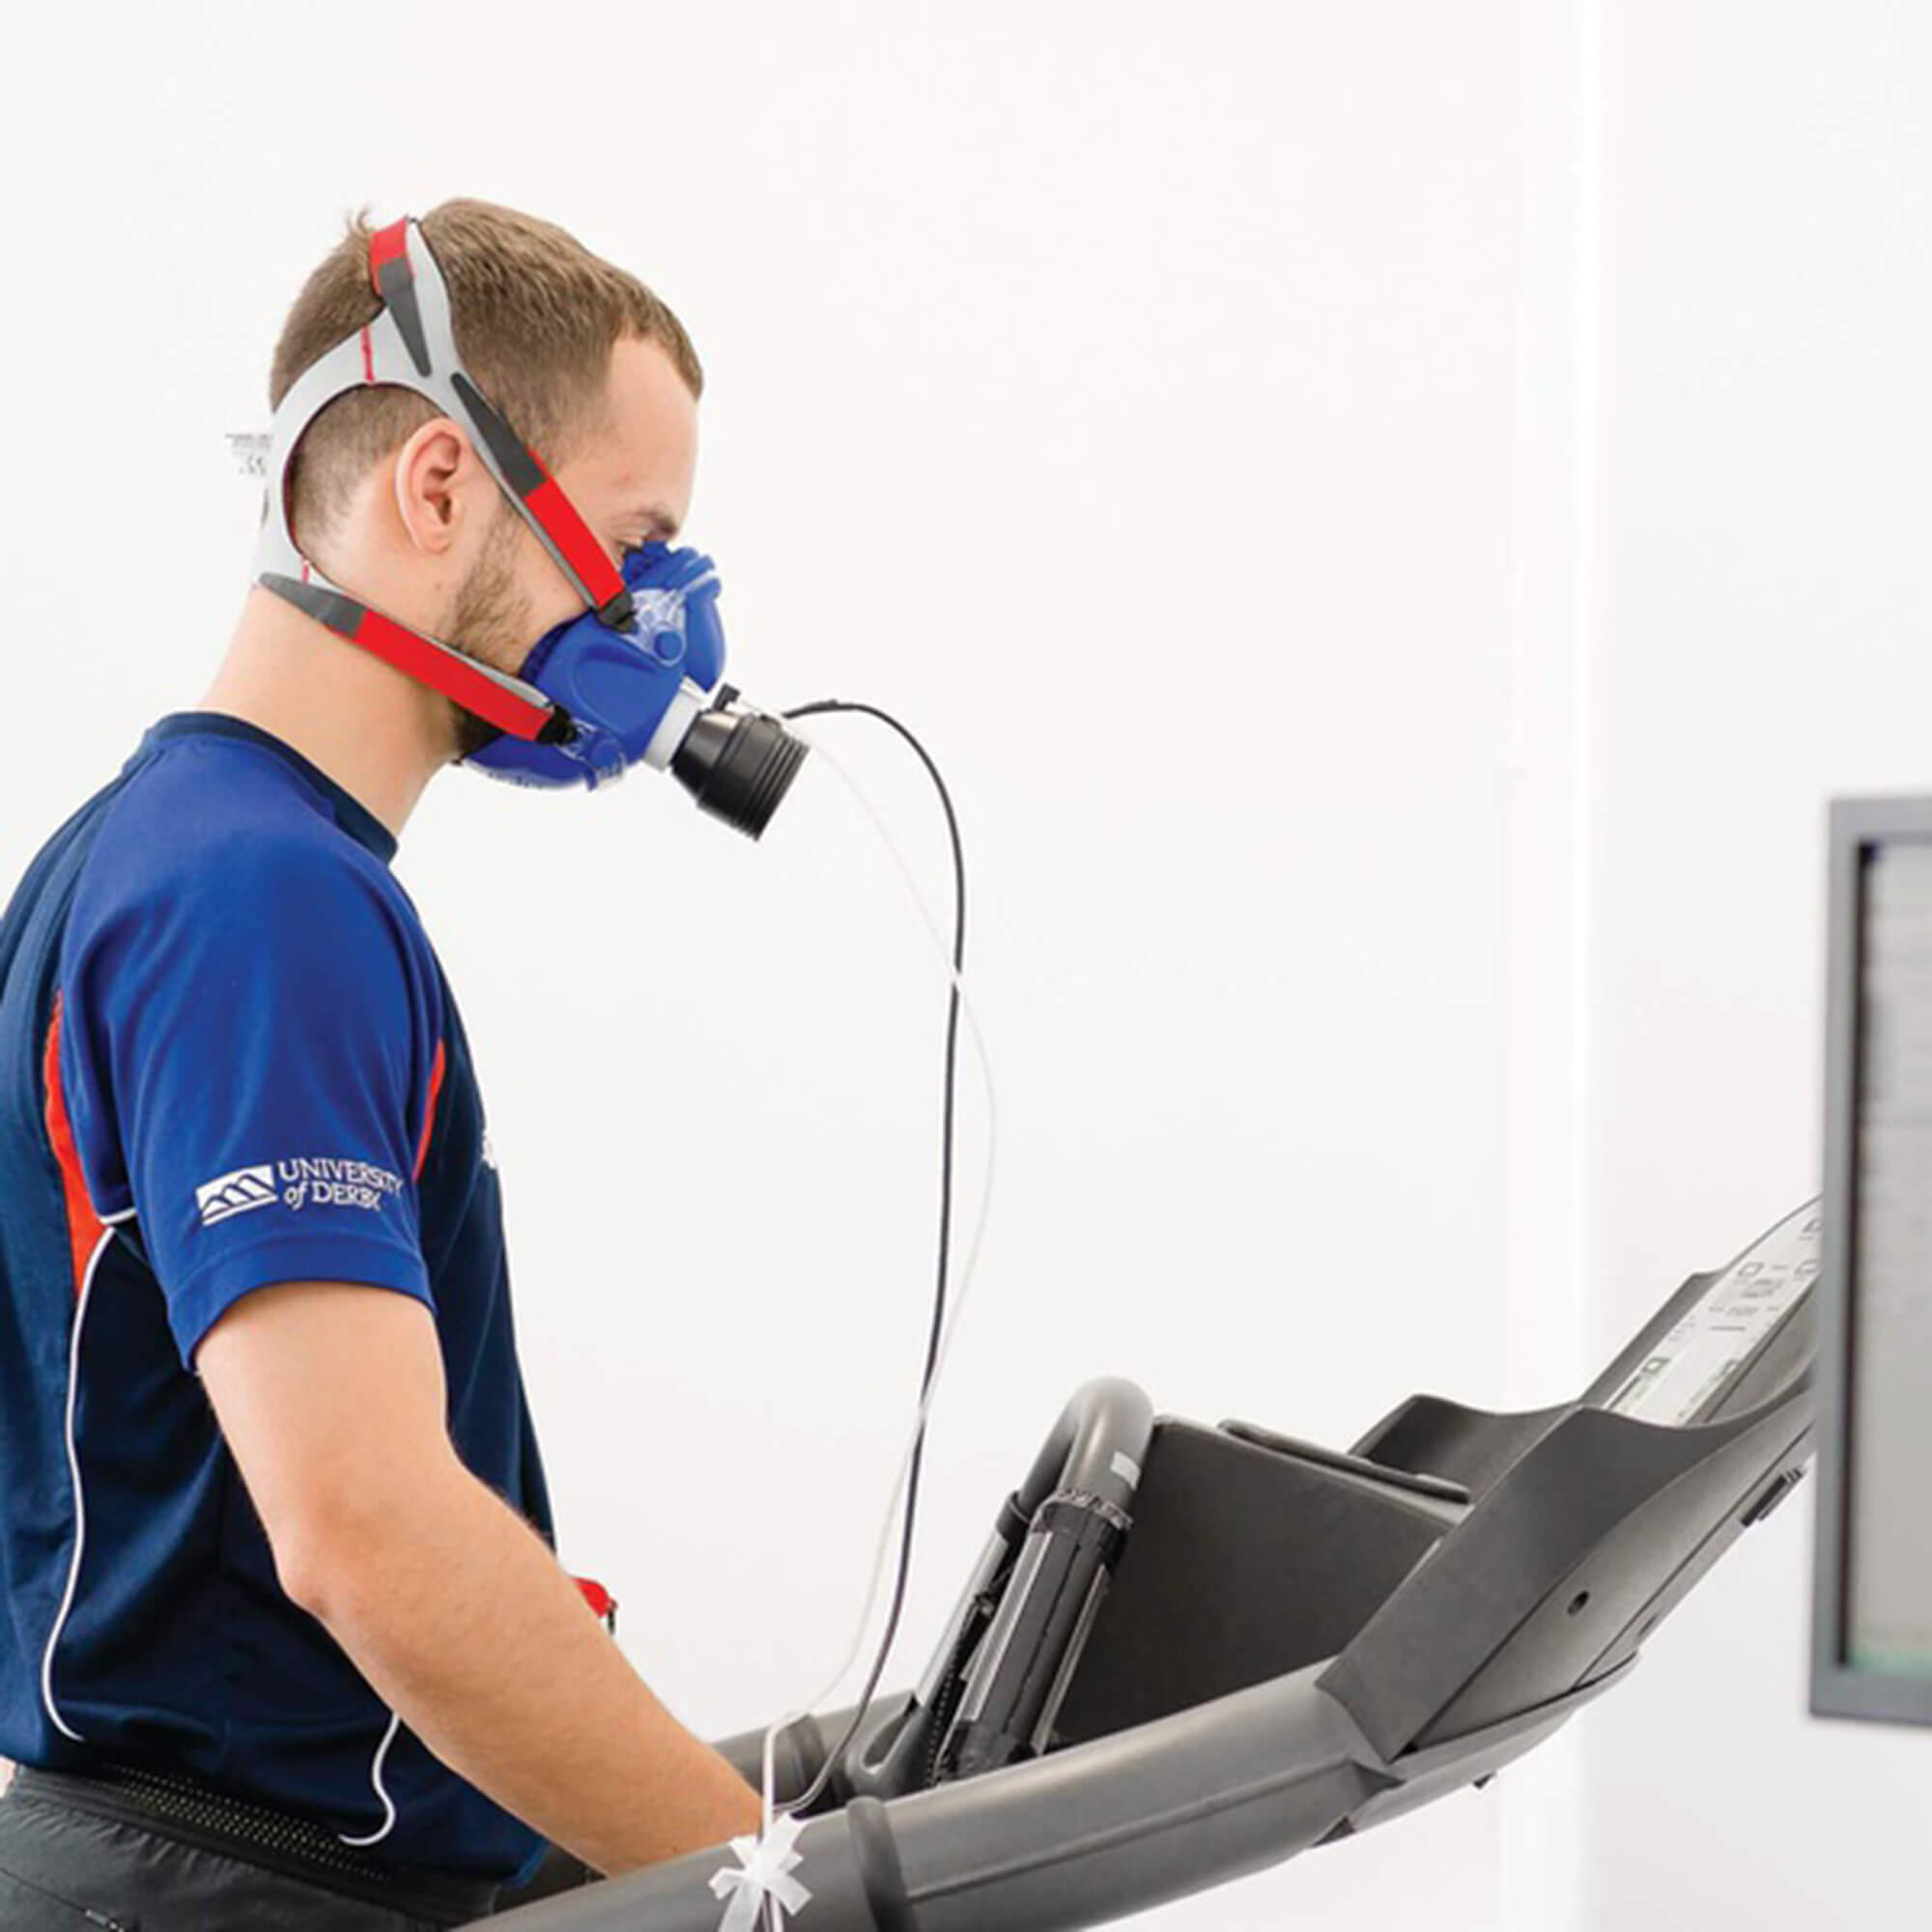 A male student walking on a treadmill with a breathing monitor on